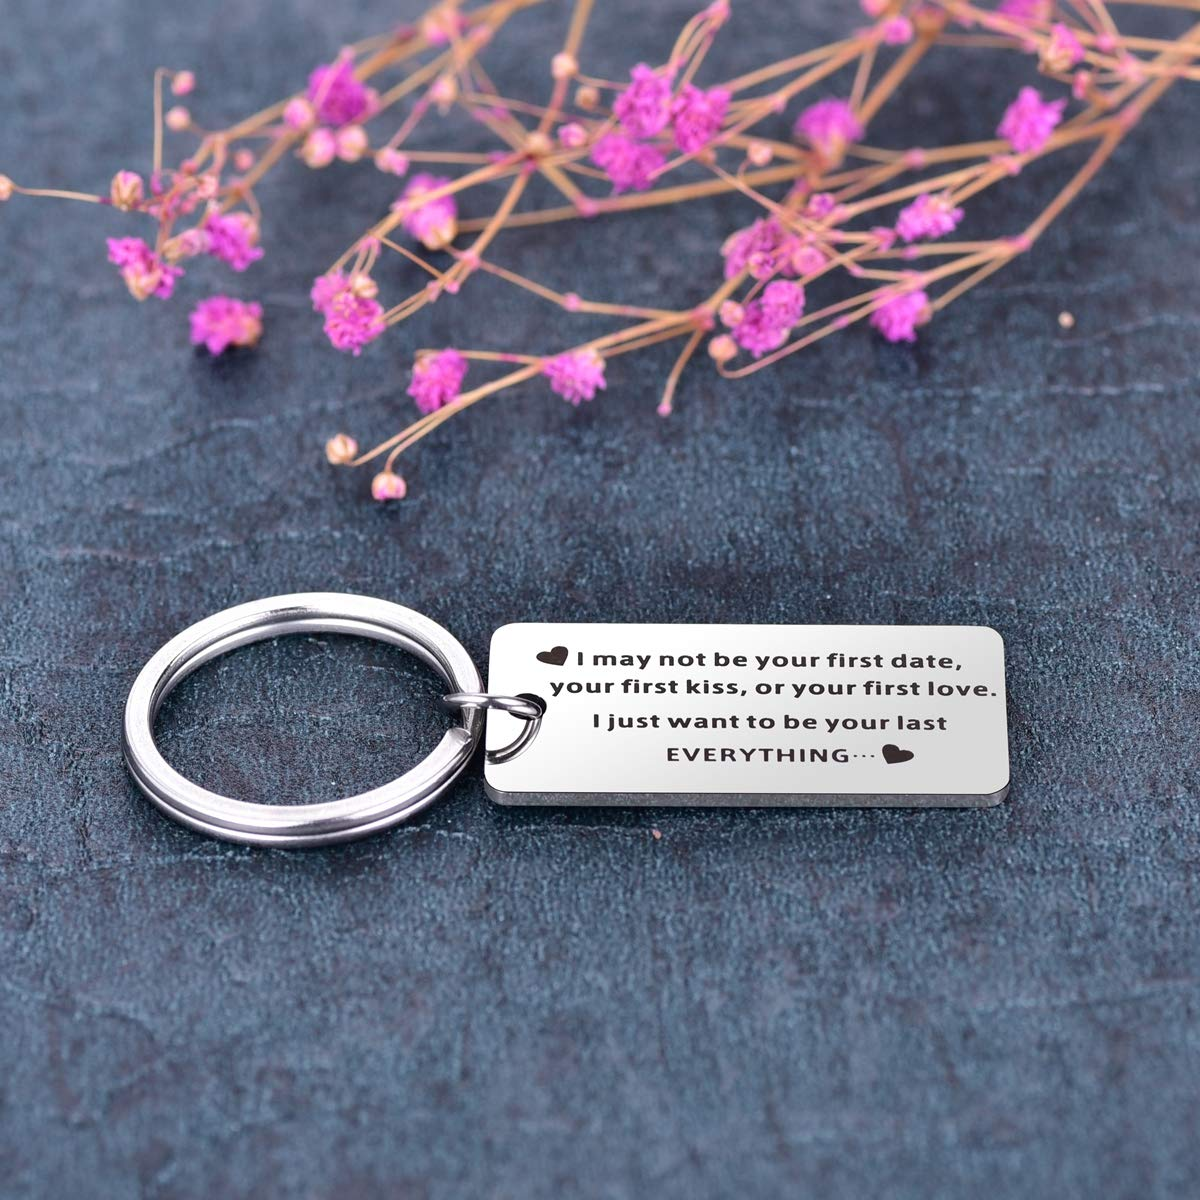 Boyfriend/Girlfriend Keychain I May Not Be Your First Date Want To Be Your  Last Everything Keychain Anniversary Valentine's Day Birthday Christmas